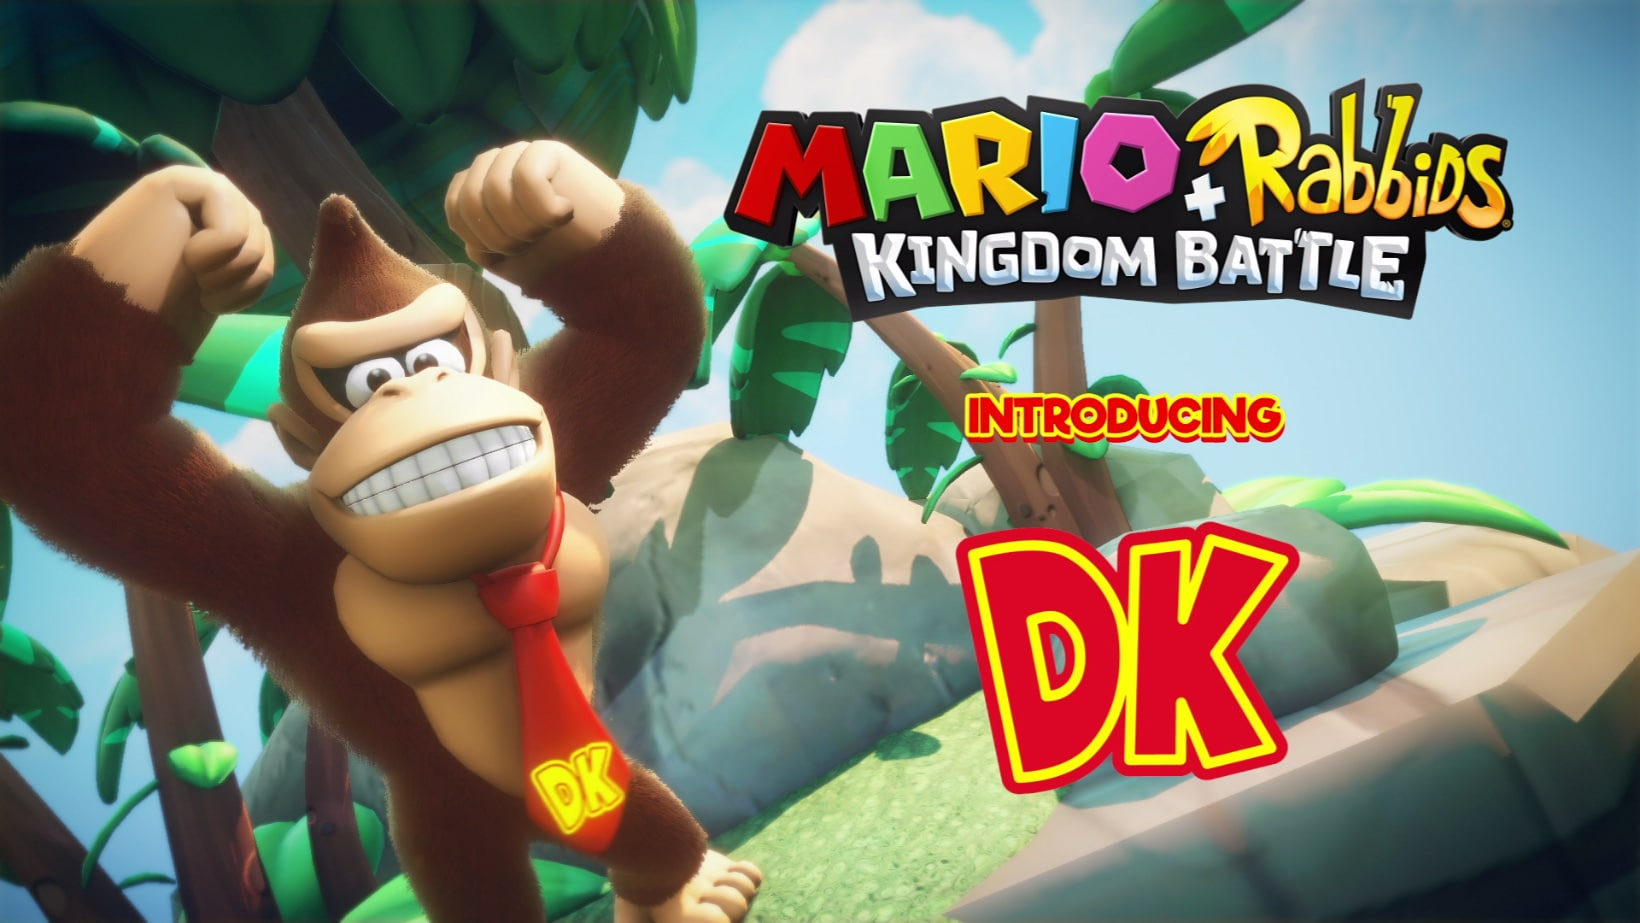 [2017-01-11] Mario + Rabbids Kingdom Battle DLC – Donkey Kong Swings into Action